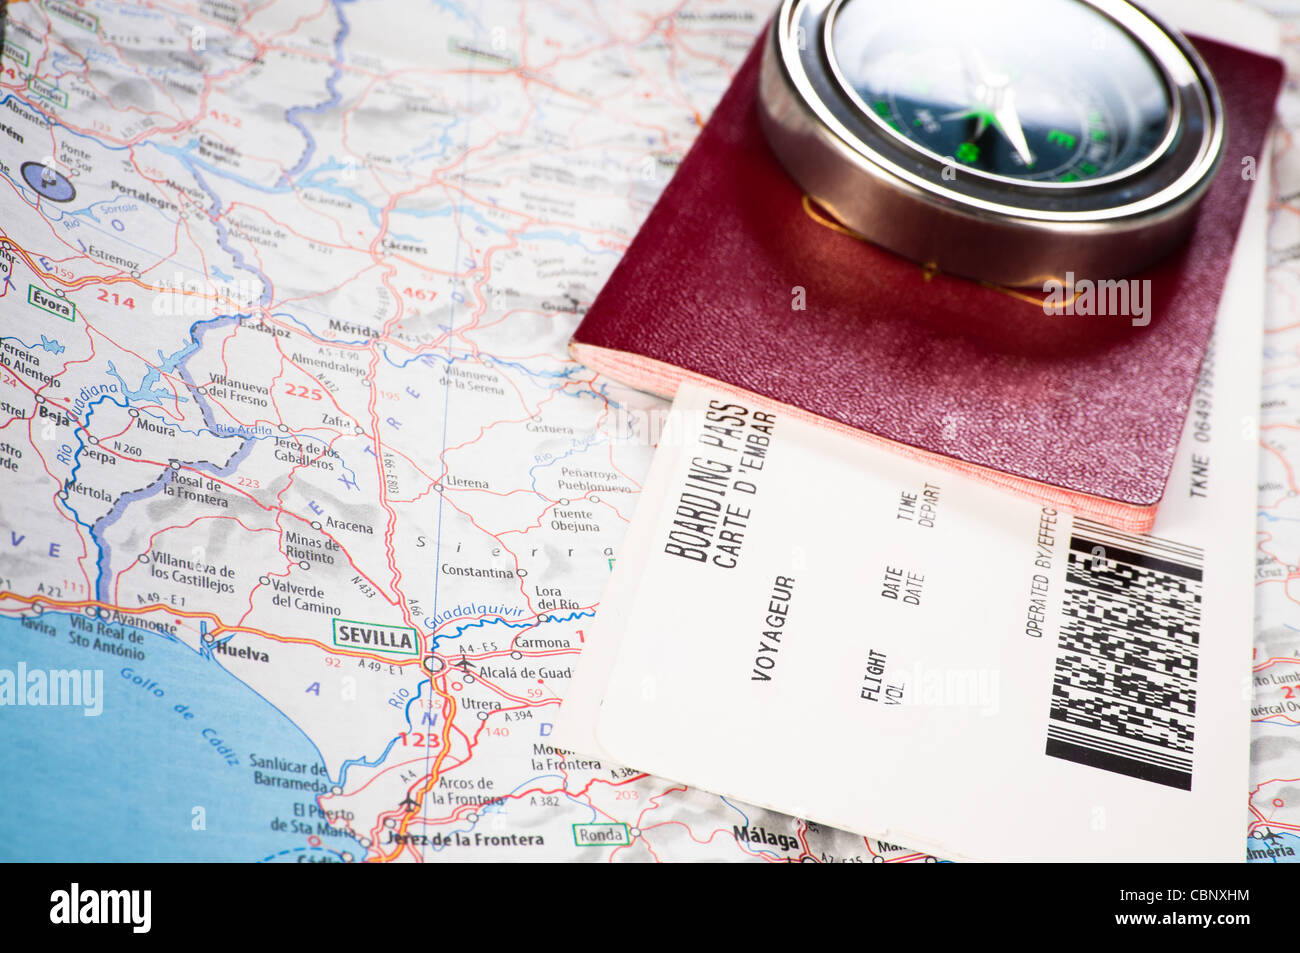 compass and passport with boarding pass - Stock Image